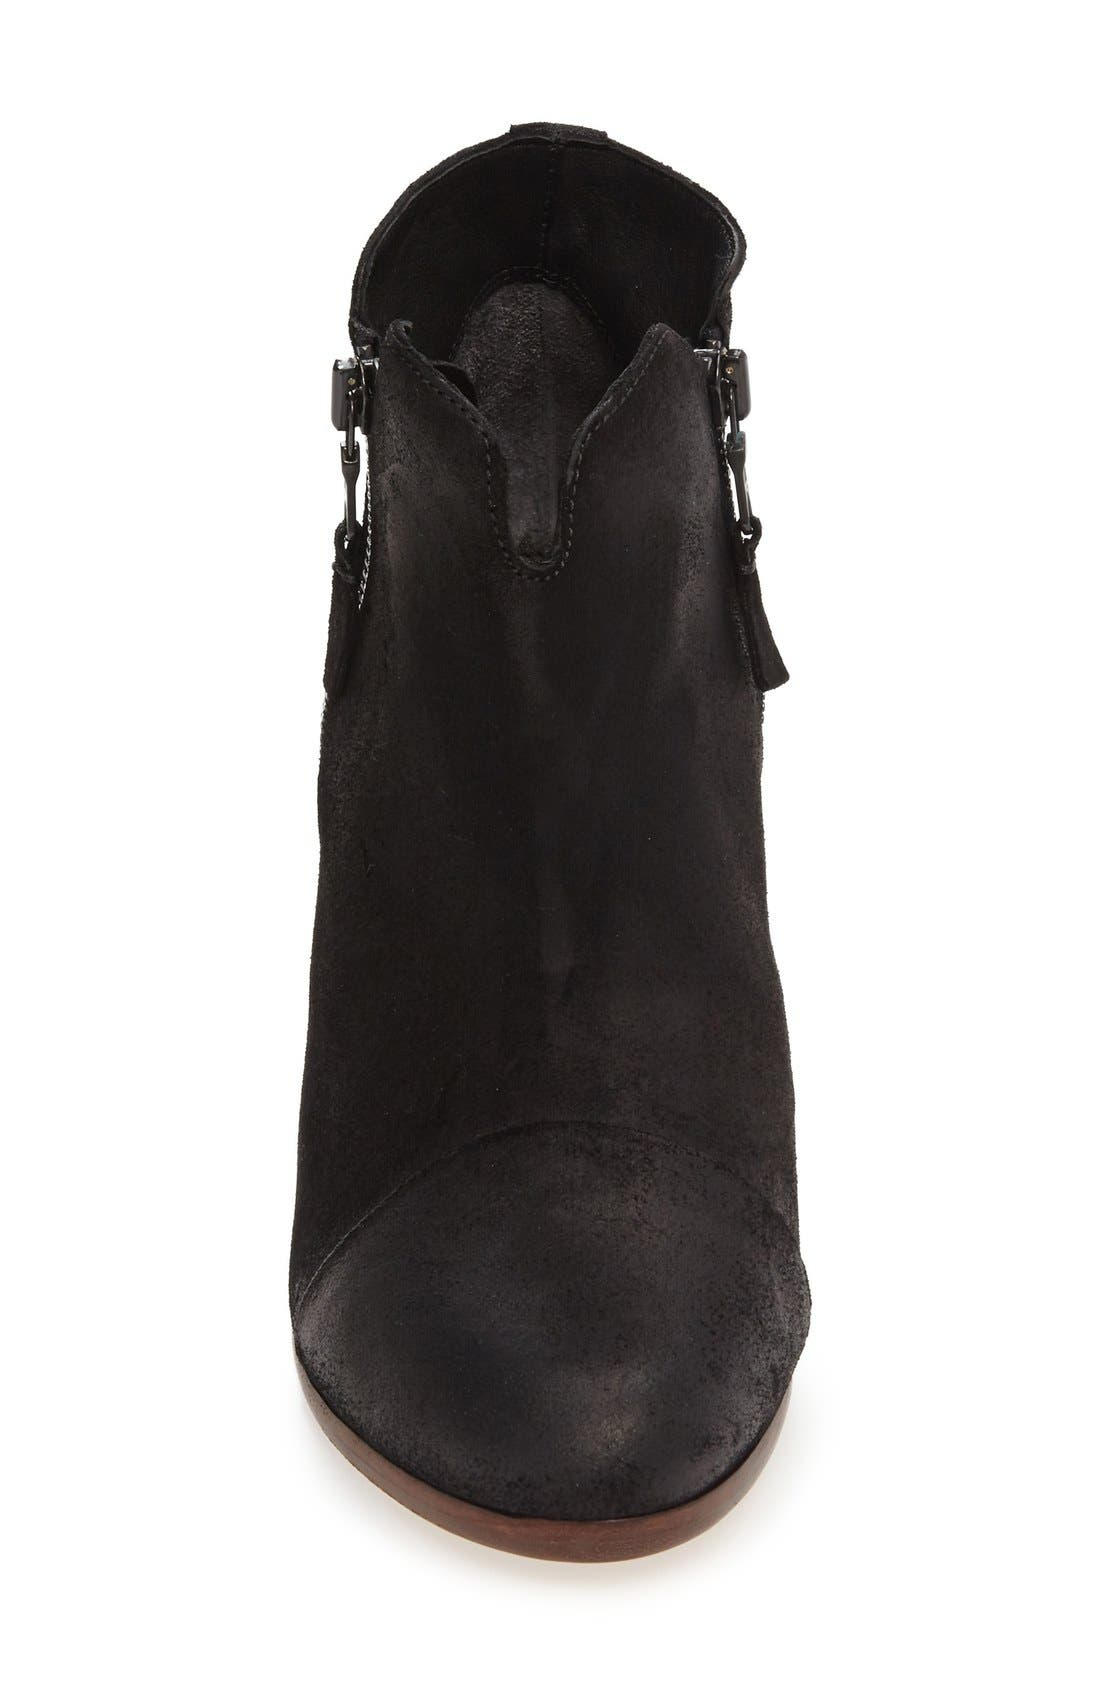 Margot Bootie,                             Alternate thumbnail 9, color,                             Black Waxed Suede